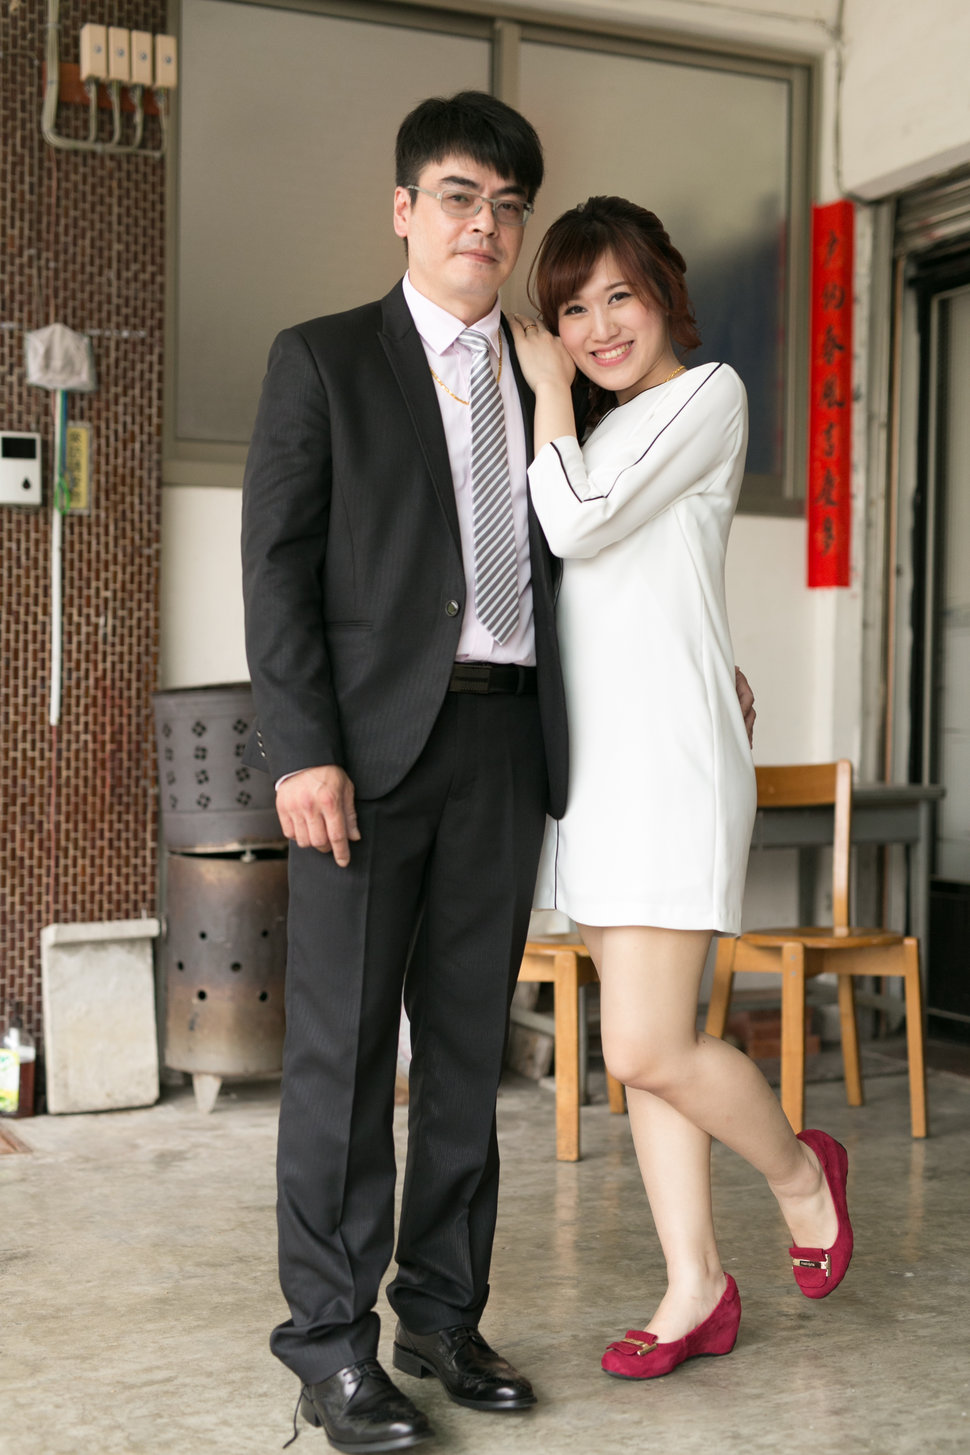 2D7A9461 - Jarvis Ding - 結婚吧